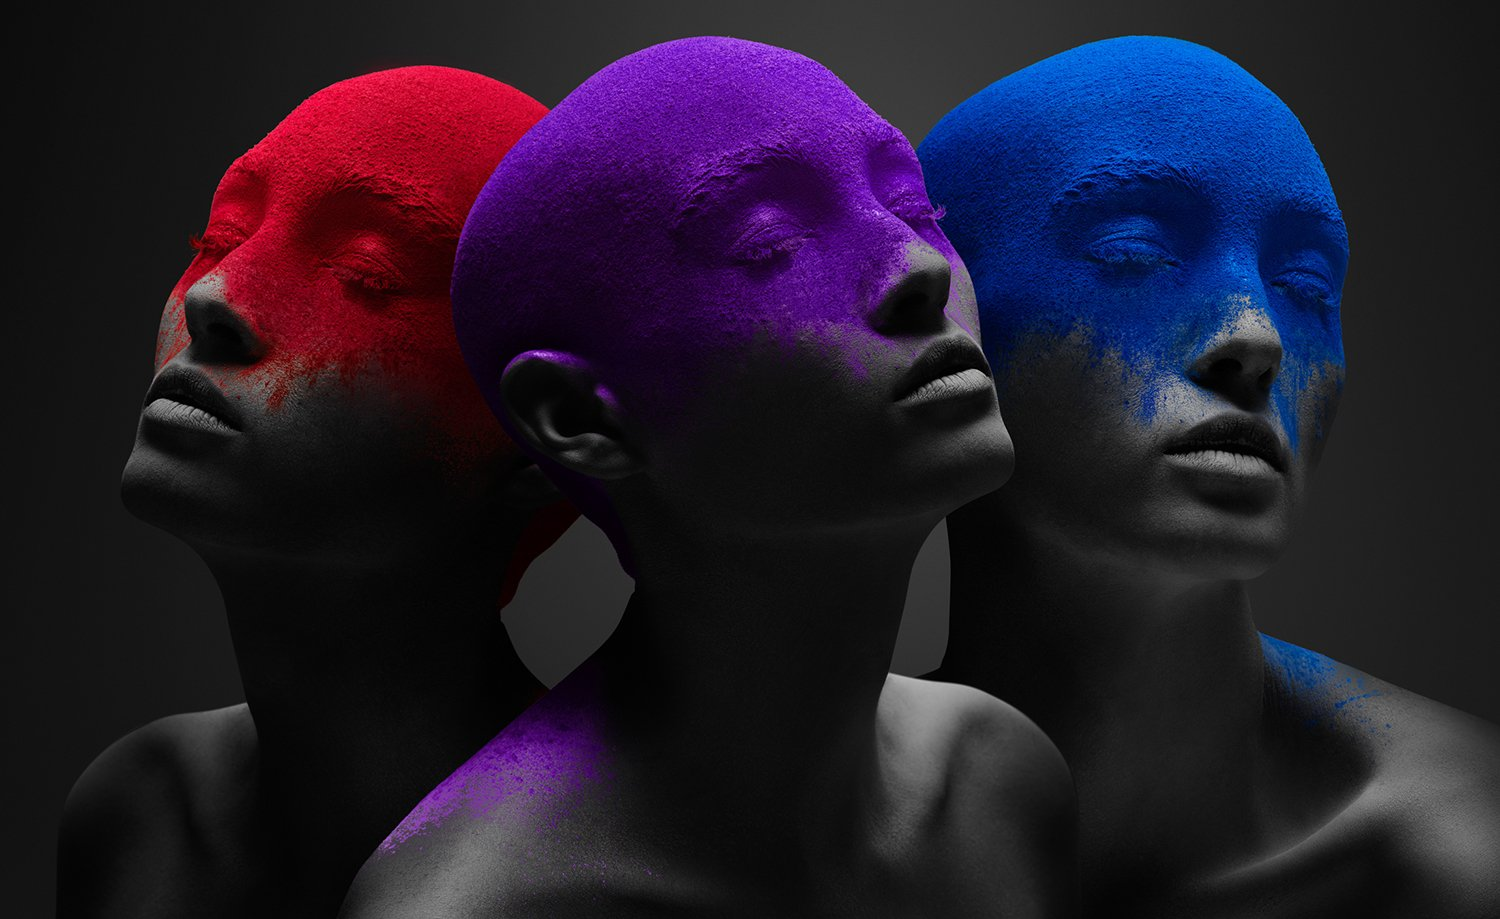 red, purple and blue, portraits